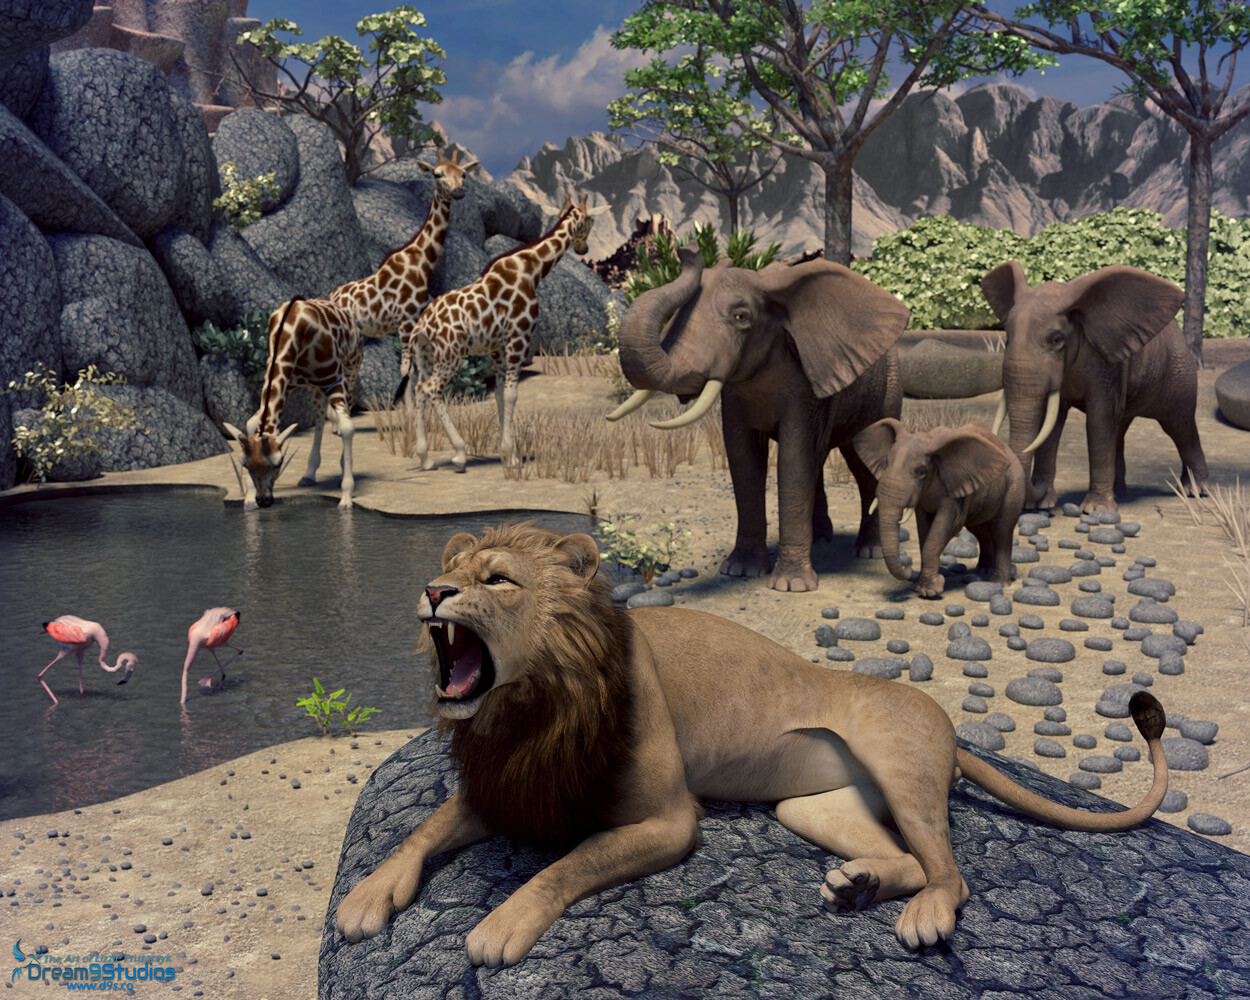 A scene from down in Africa of a water hole on the great savannah being visited by a variety of native wildlife.